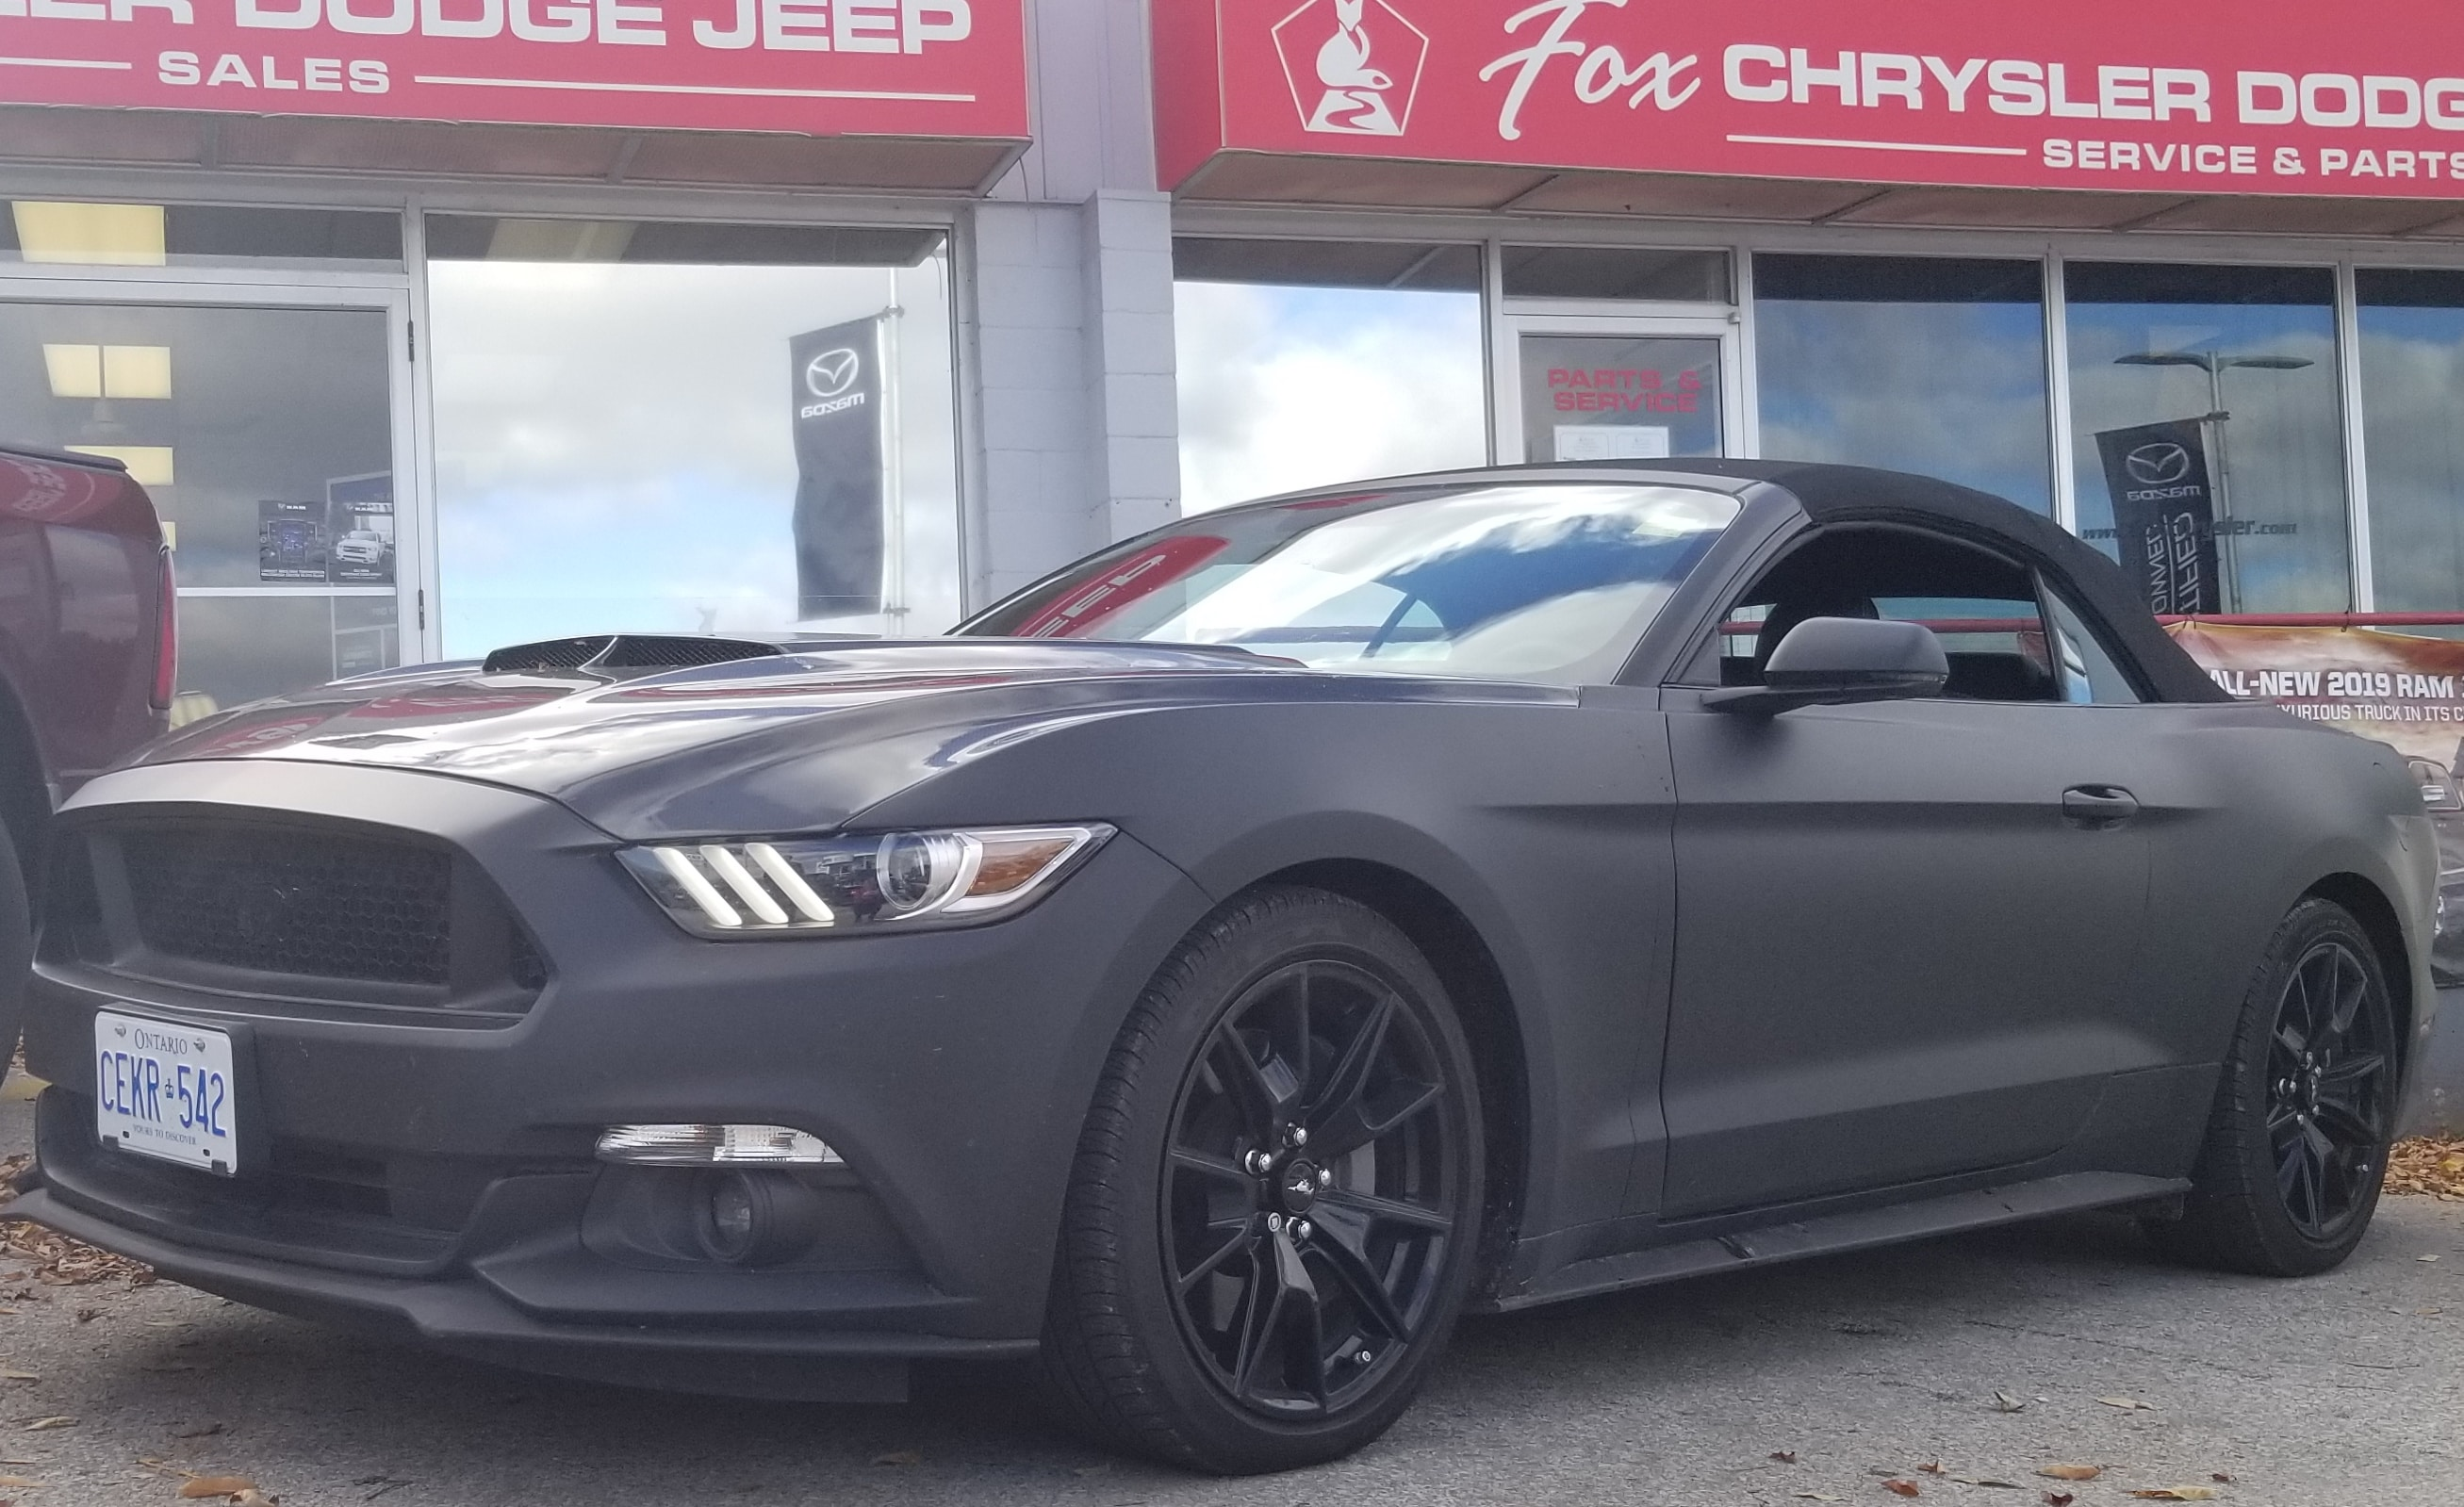 Used 2017 ford mustang gt premium for sale owen sound on